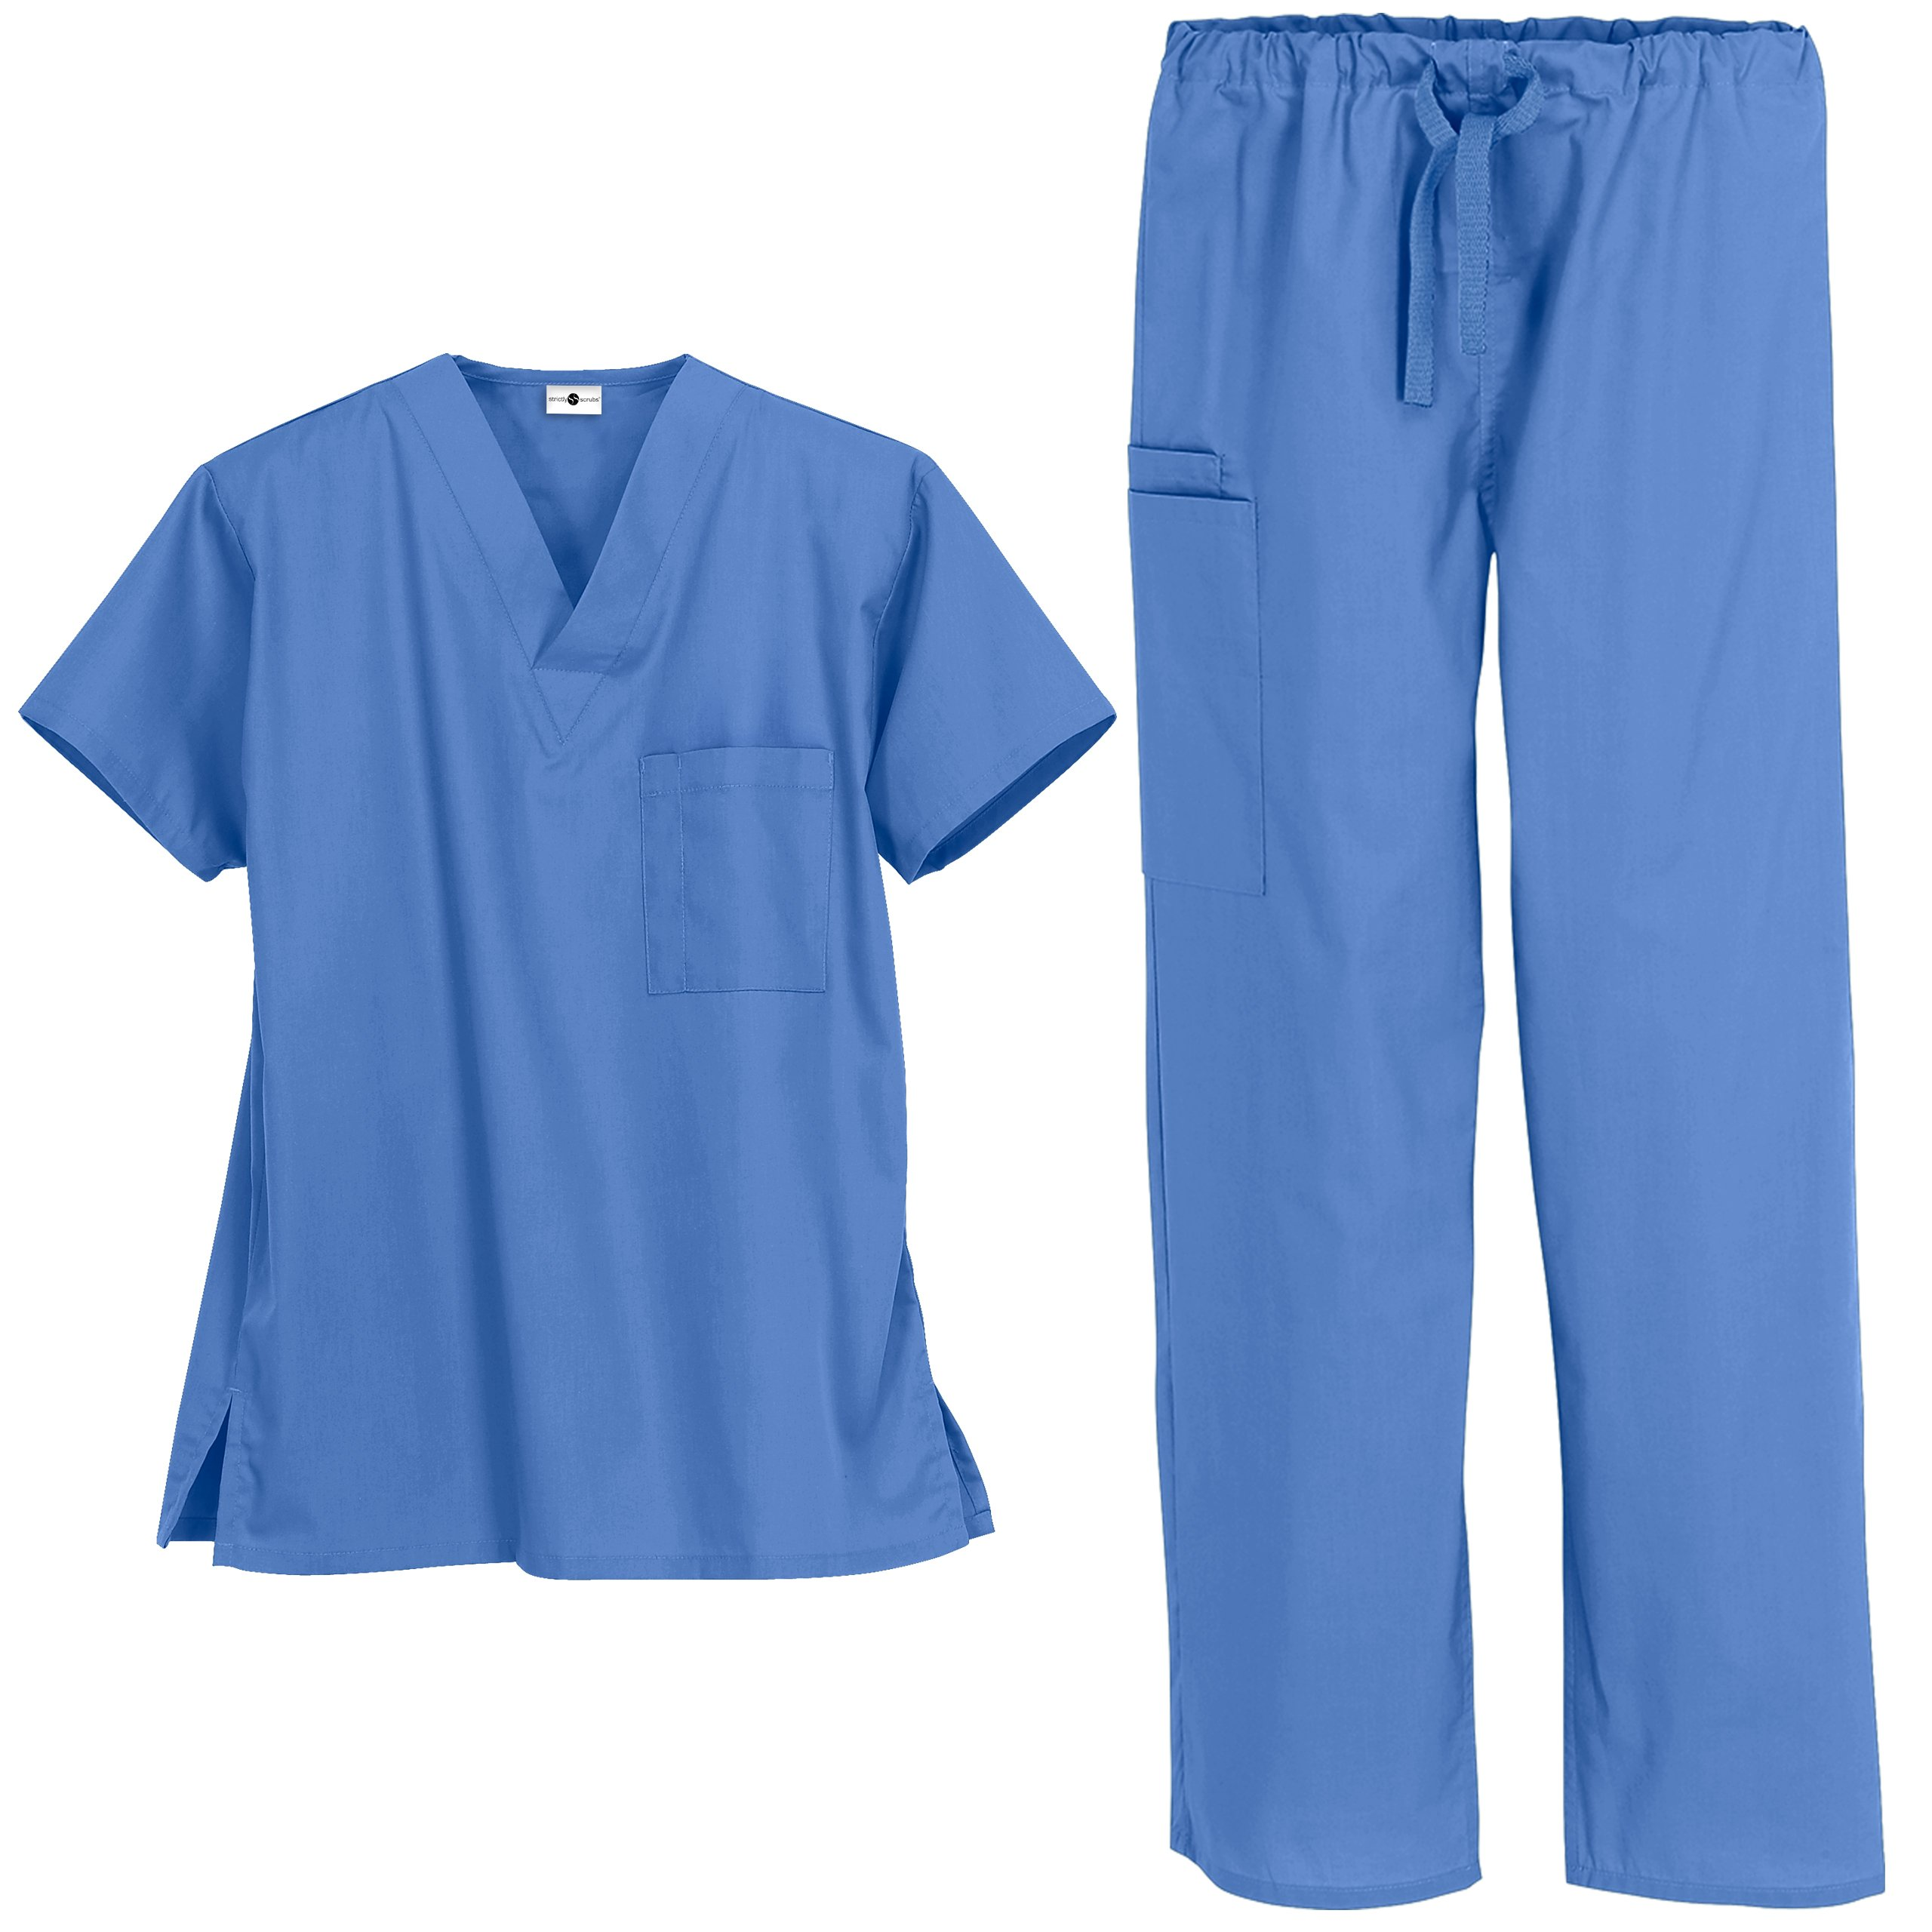 Strictly Scrubs Unisex Medical Uniform Set (Medium, Ceil)